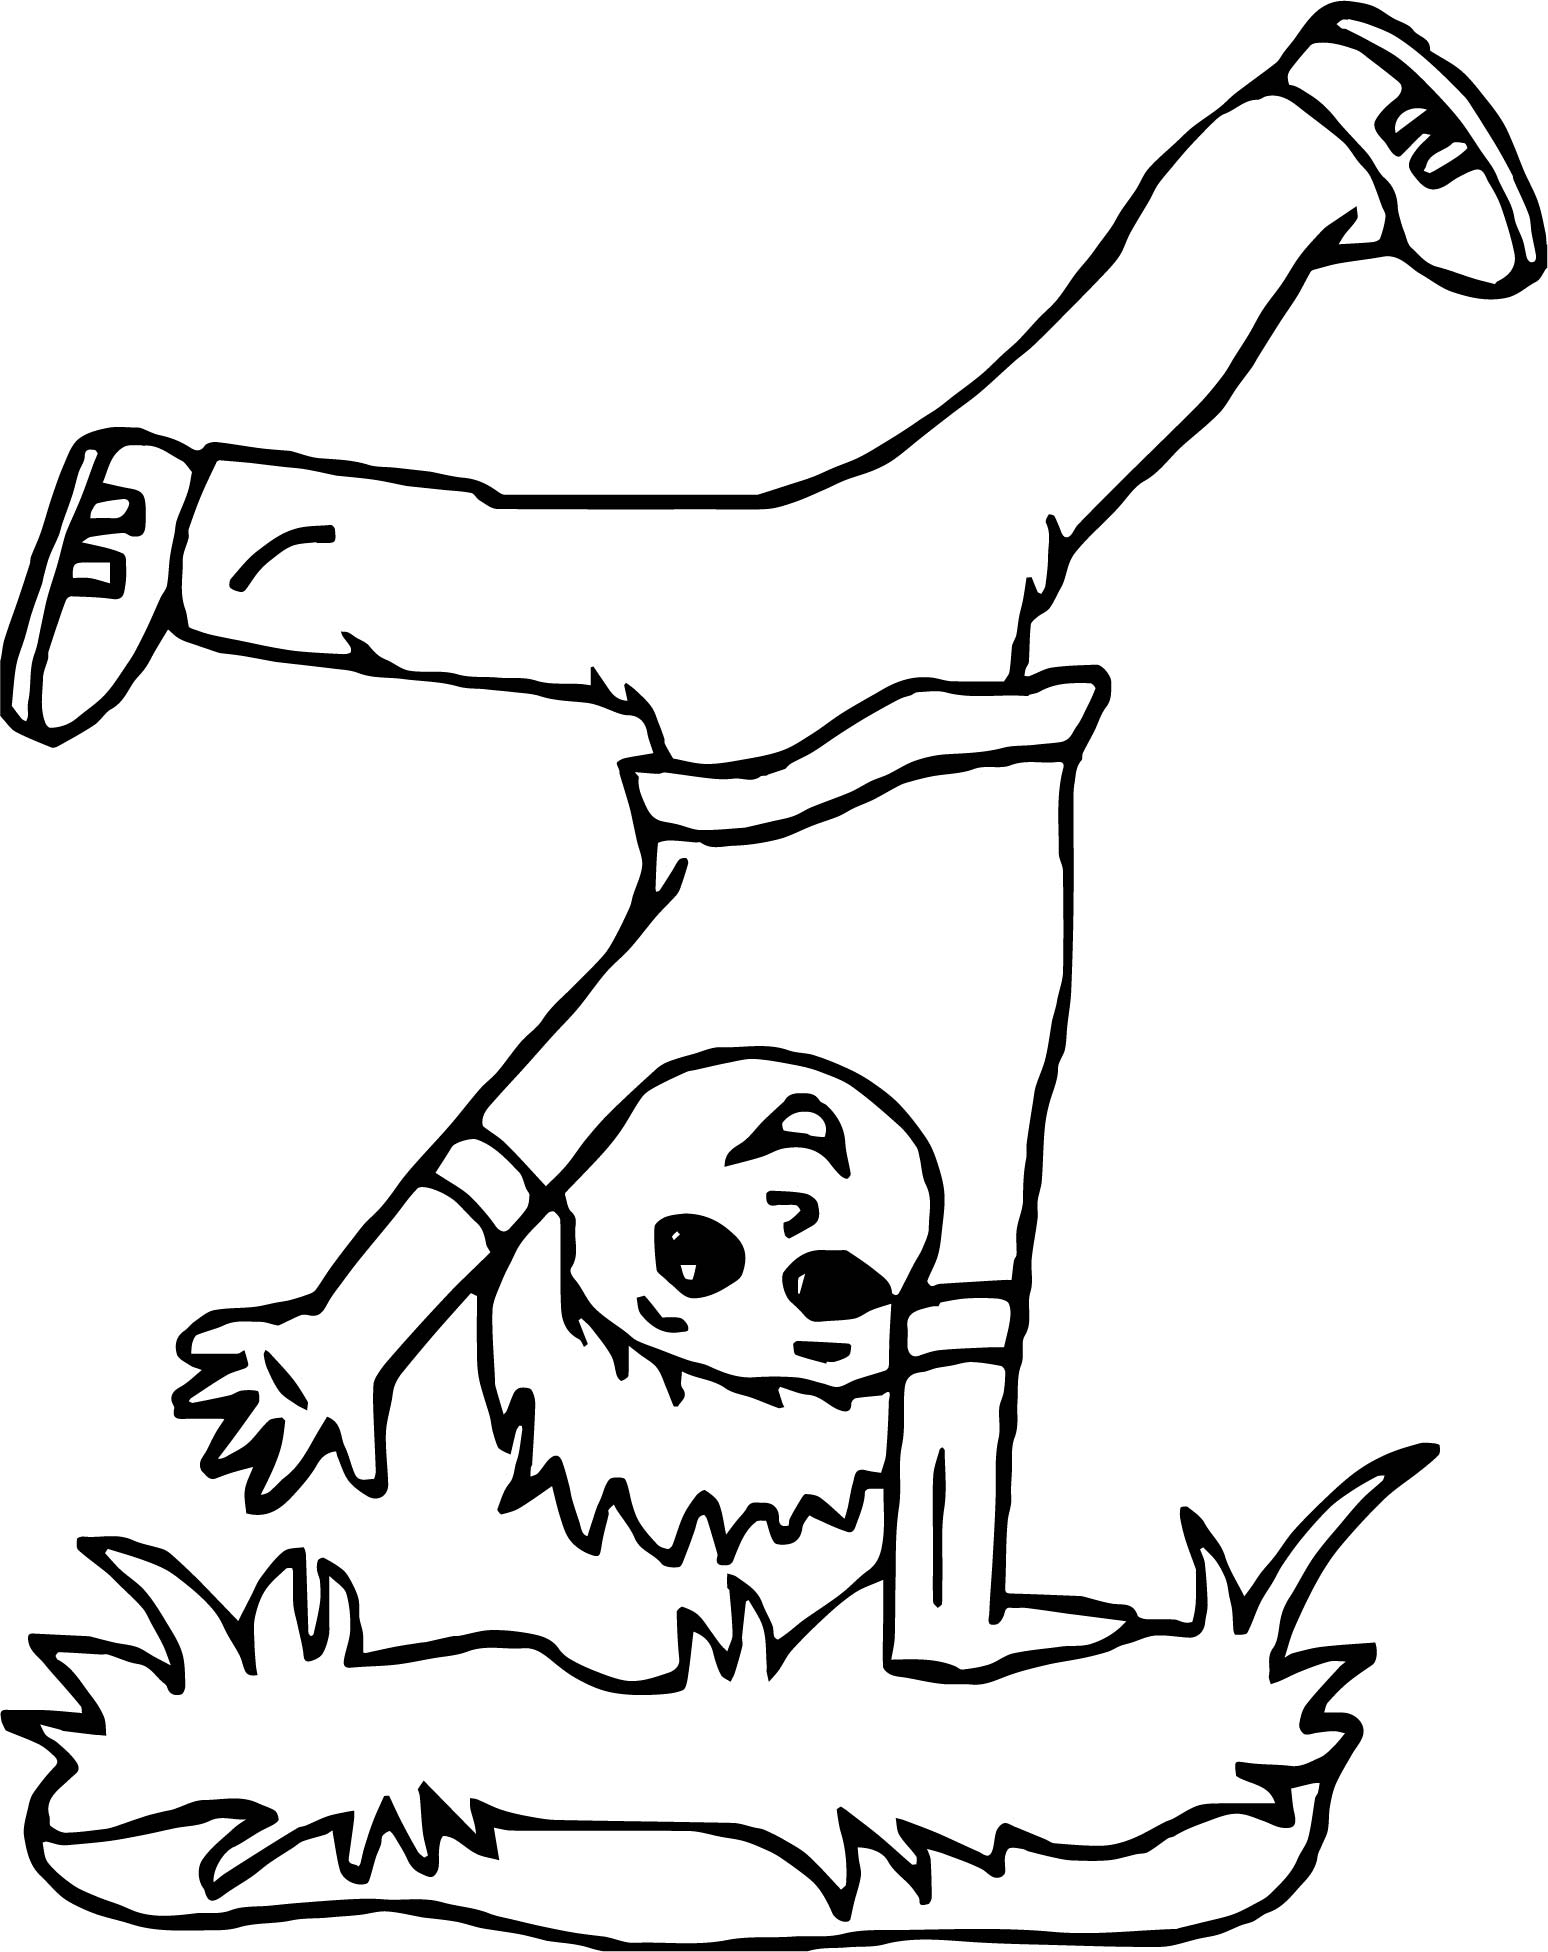 Any Doing Cartwheels Coloring Page